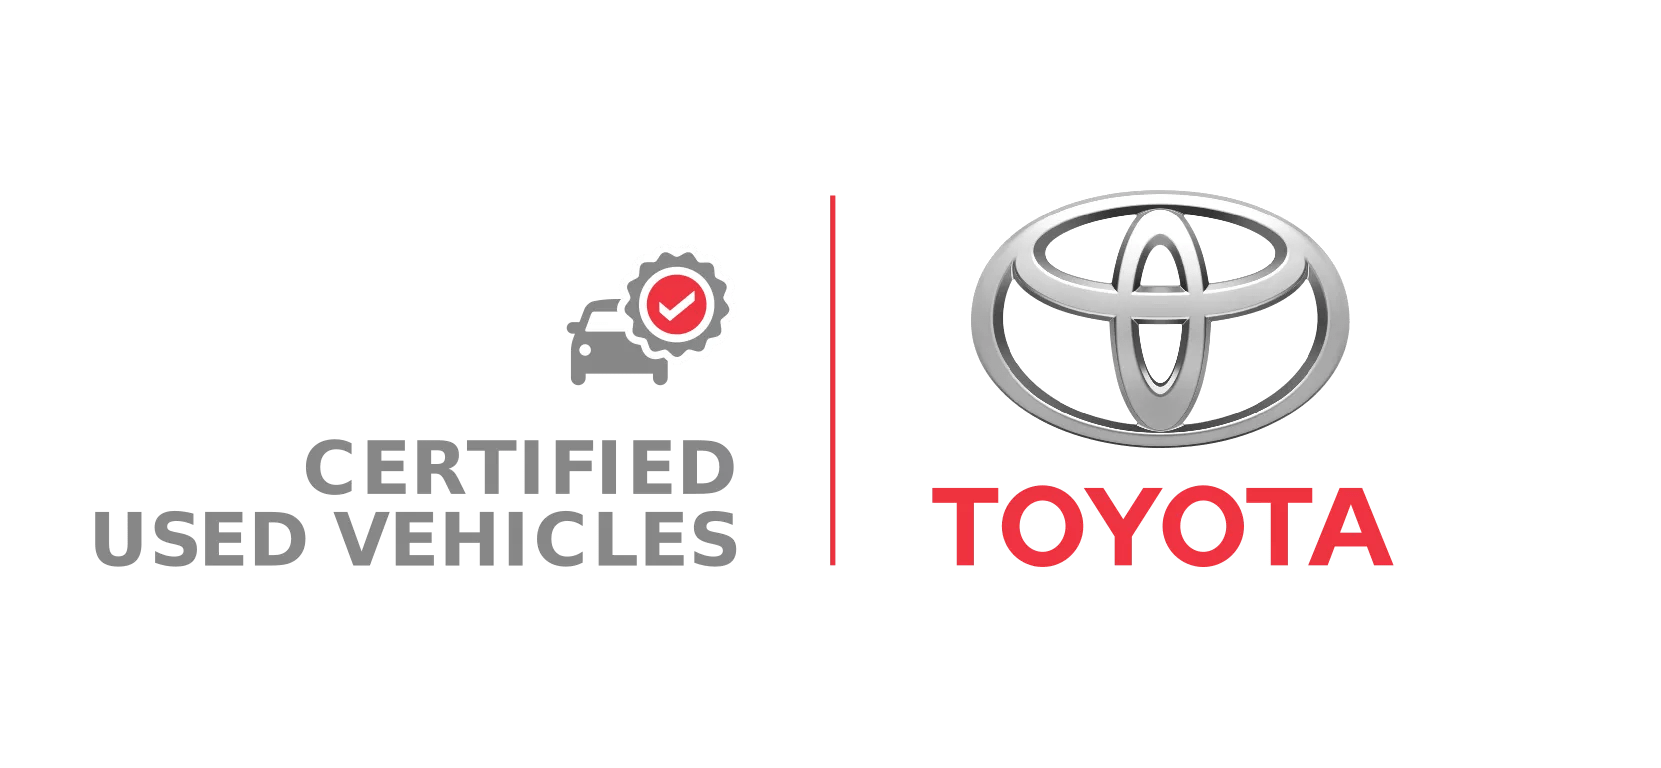 Toyota Rav4 For Sale In Montreal And Surrounding